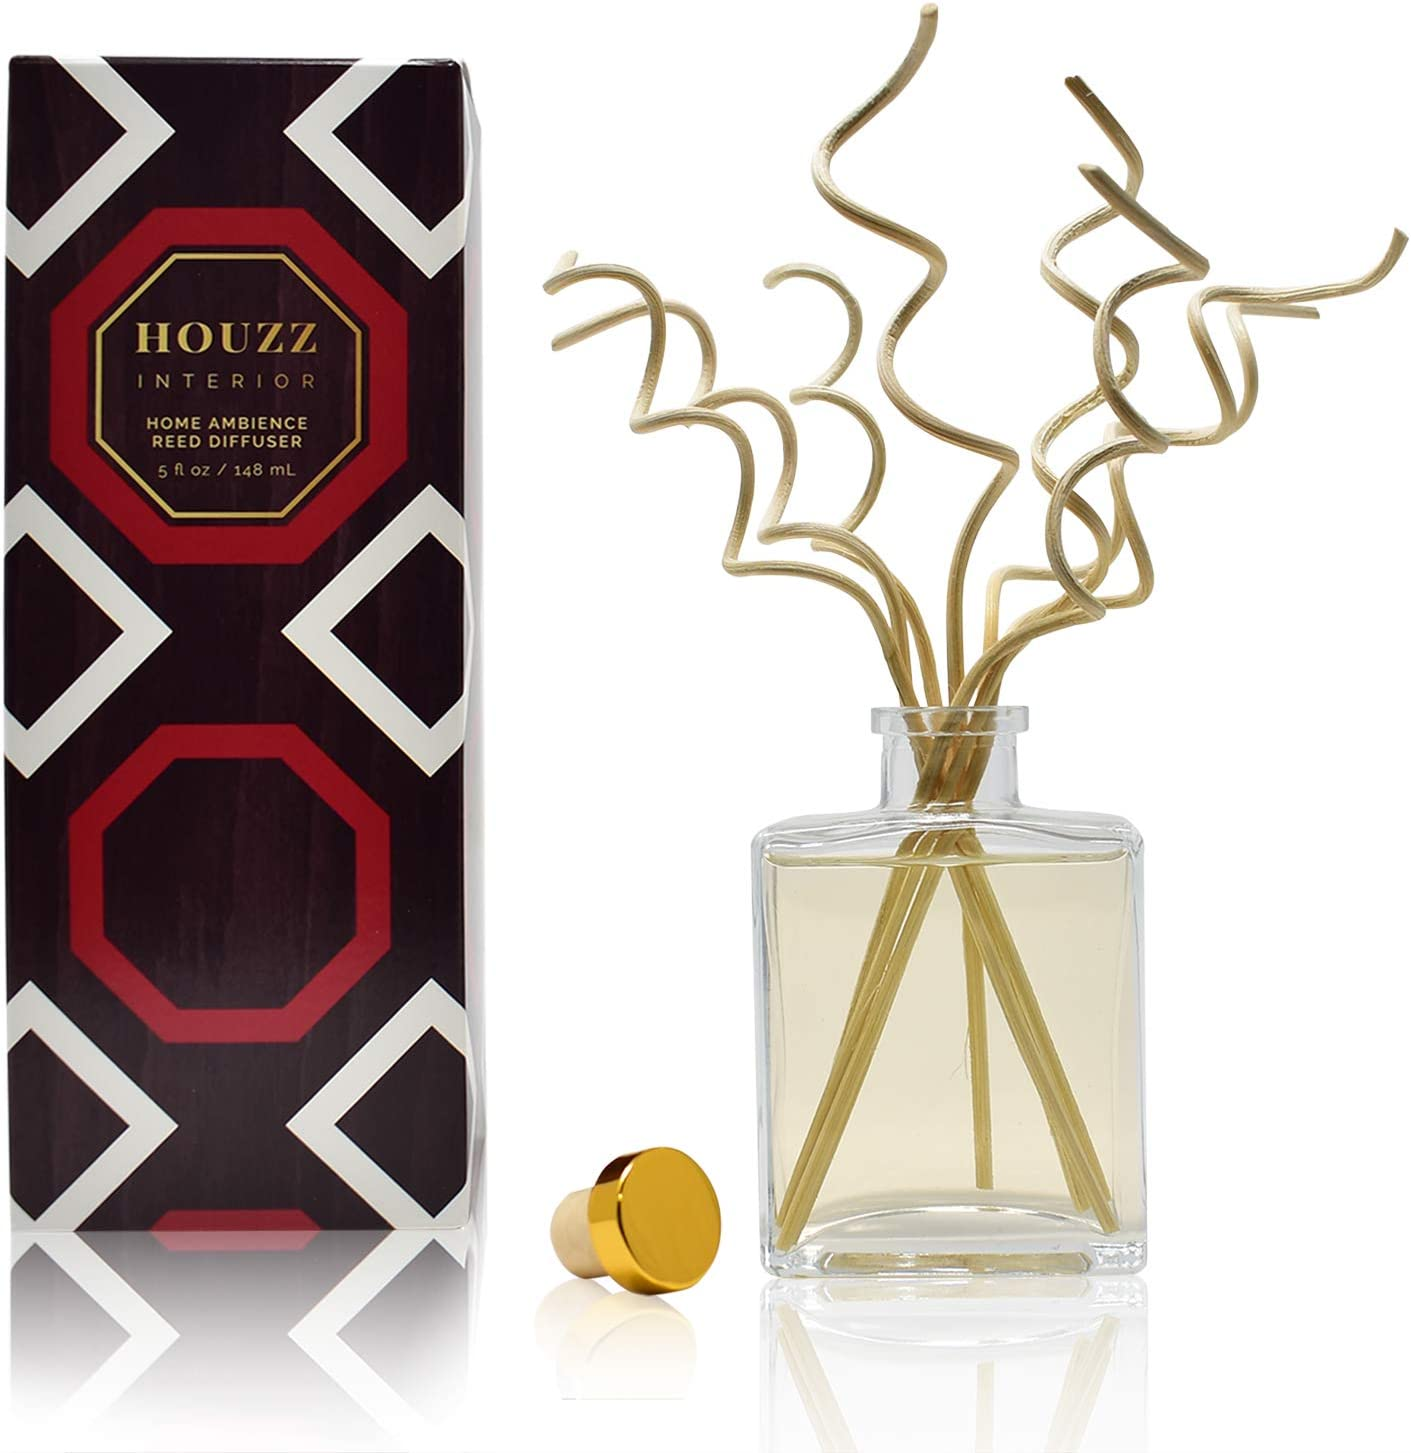 HOUZZ Interior Reed Diffuser Sticks Farmhouse Apple Room Fragrance – Juicy Apples & Fresh Limes with Anjou Pear – Made with Natural Essential Oils – No Sulfates or Parabens – Made in The USA